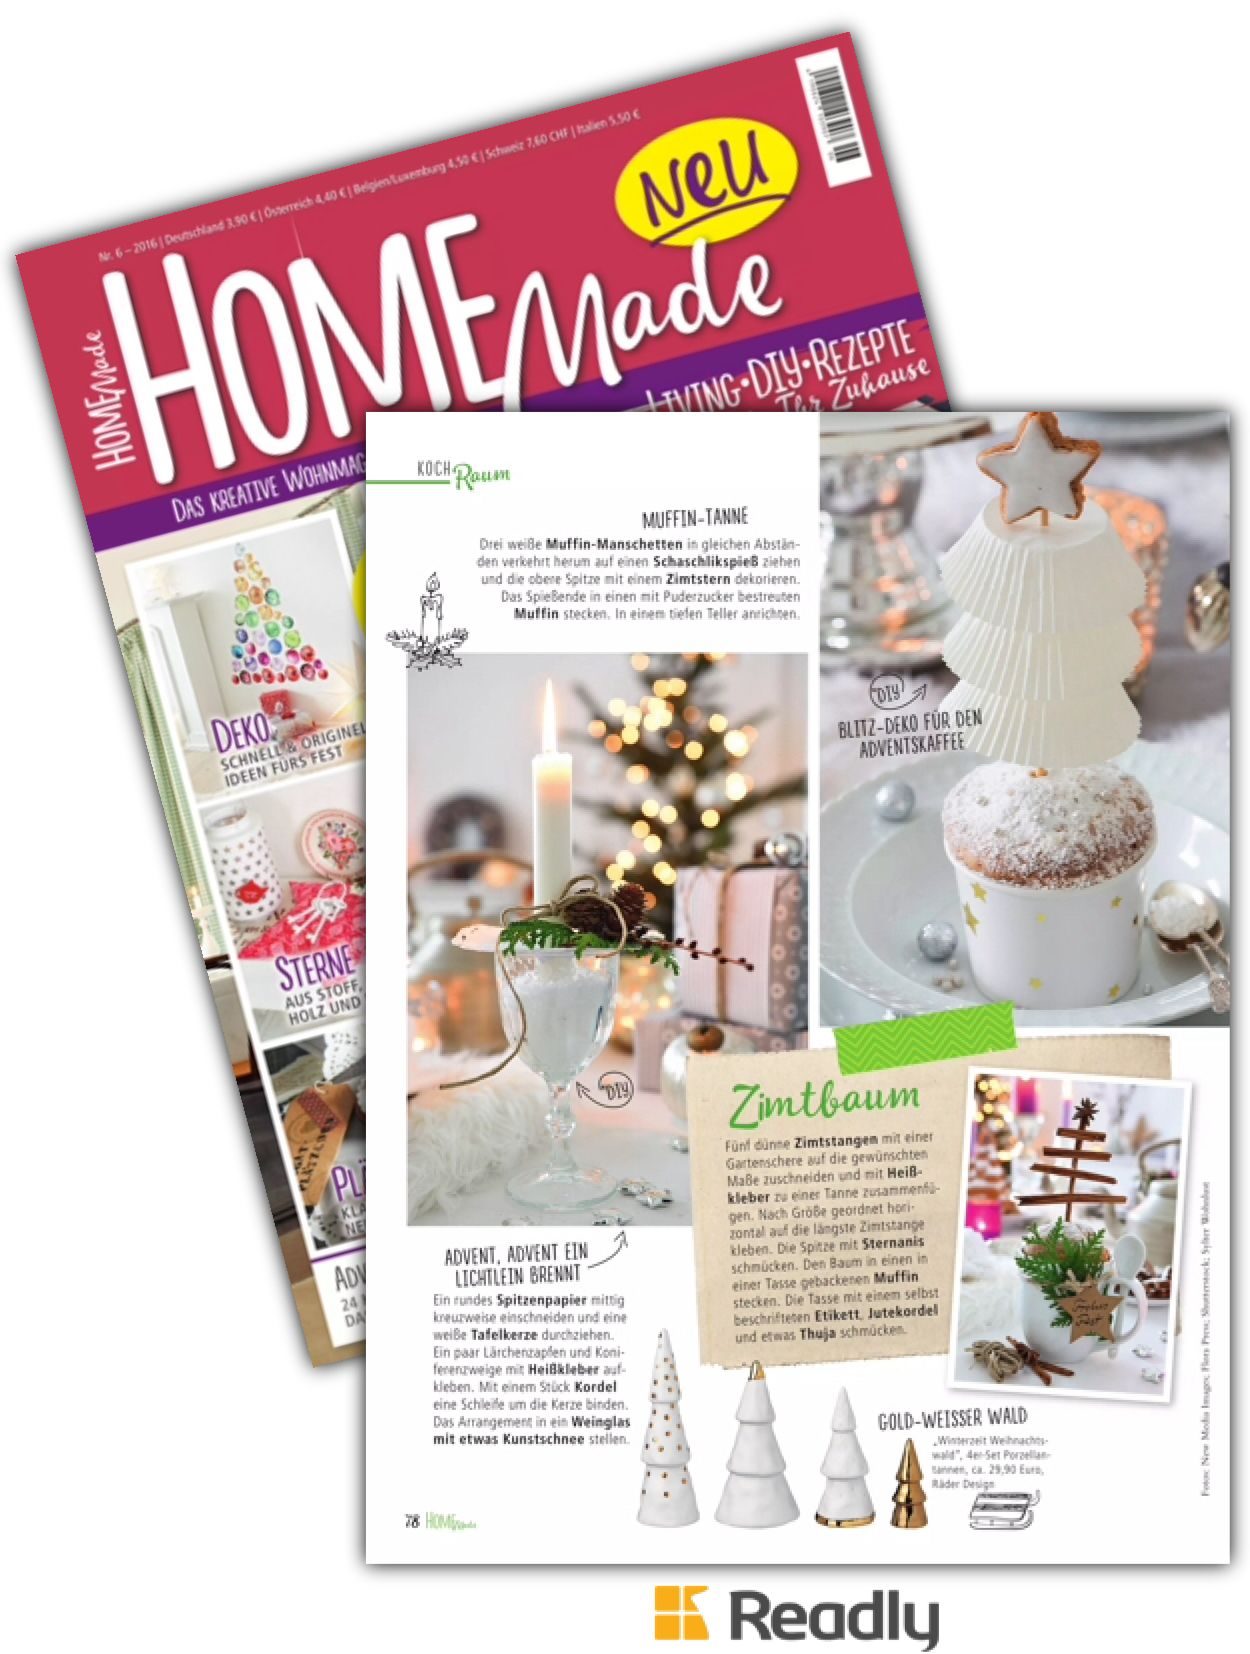 Suggestion About Homemade Das Kreative Wohnmagazin 06 16 Page 78